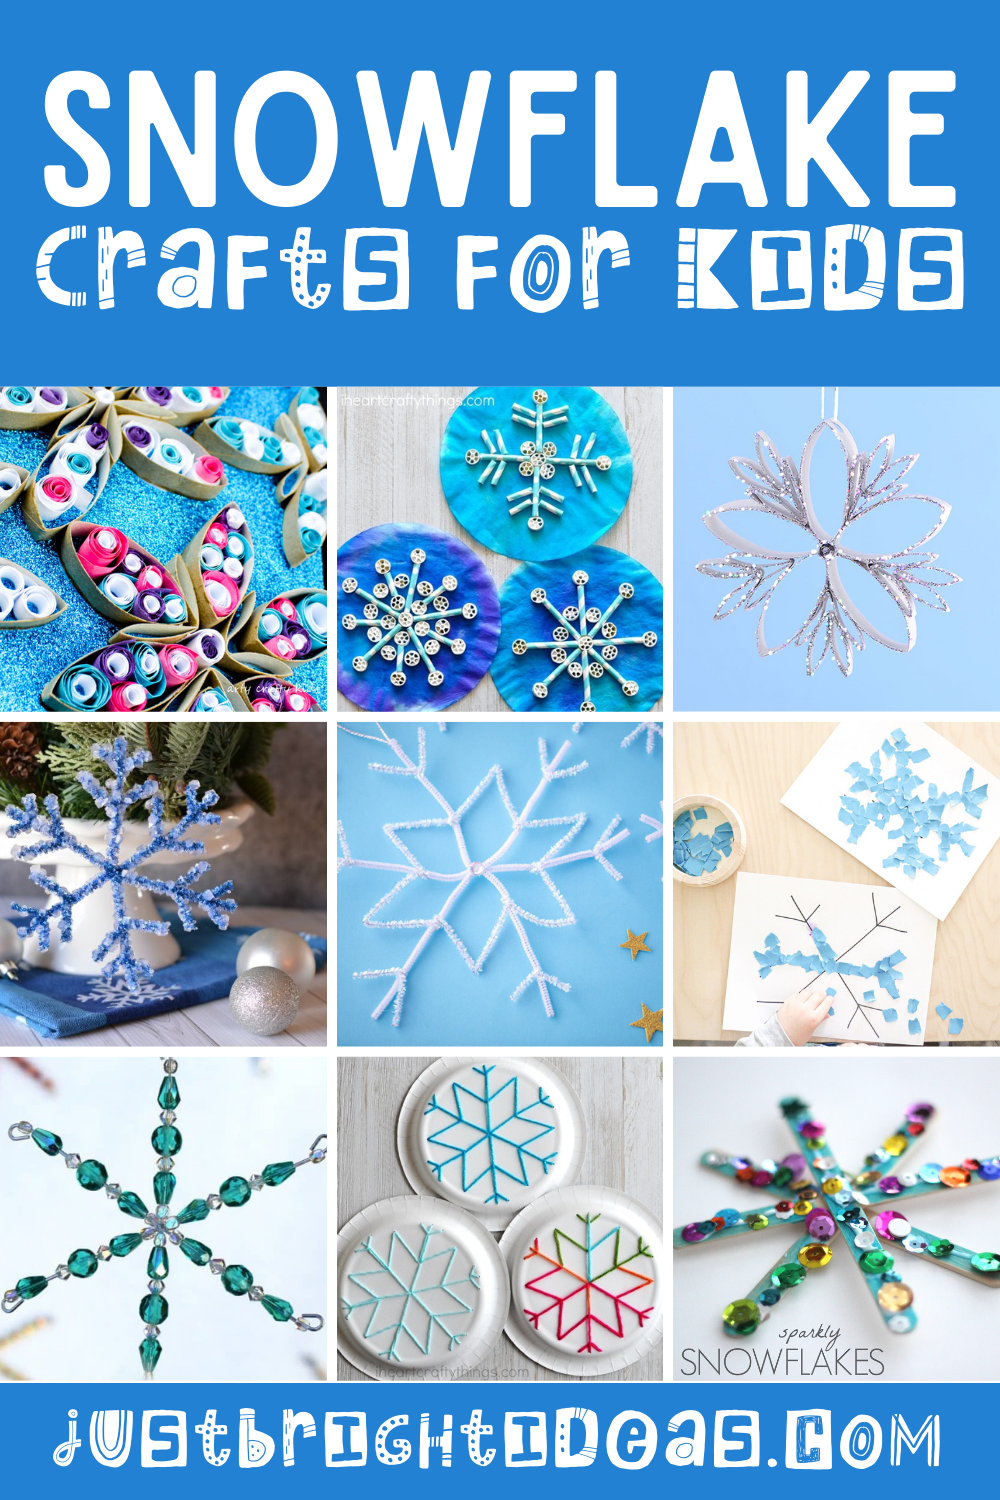 Loving these easy snowflake crafts for kids! So many fun craft projects for kids of all ages - and they sneak in math and fine motor practice too!